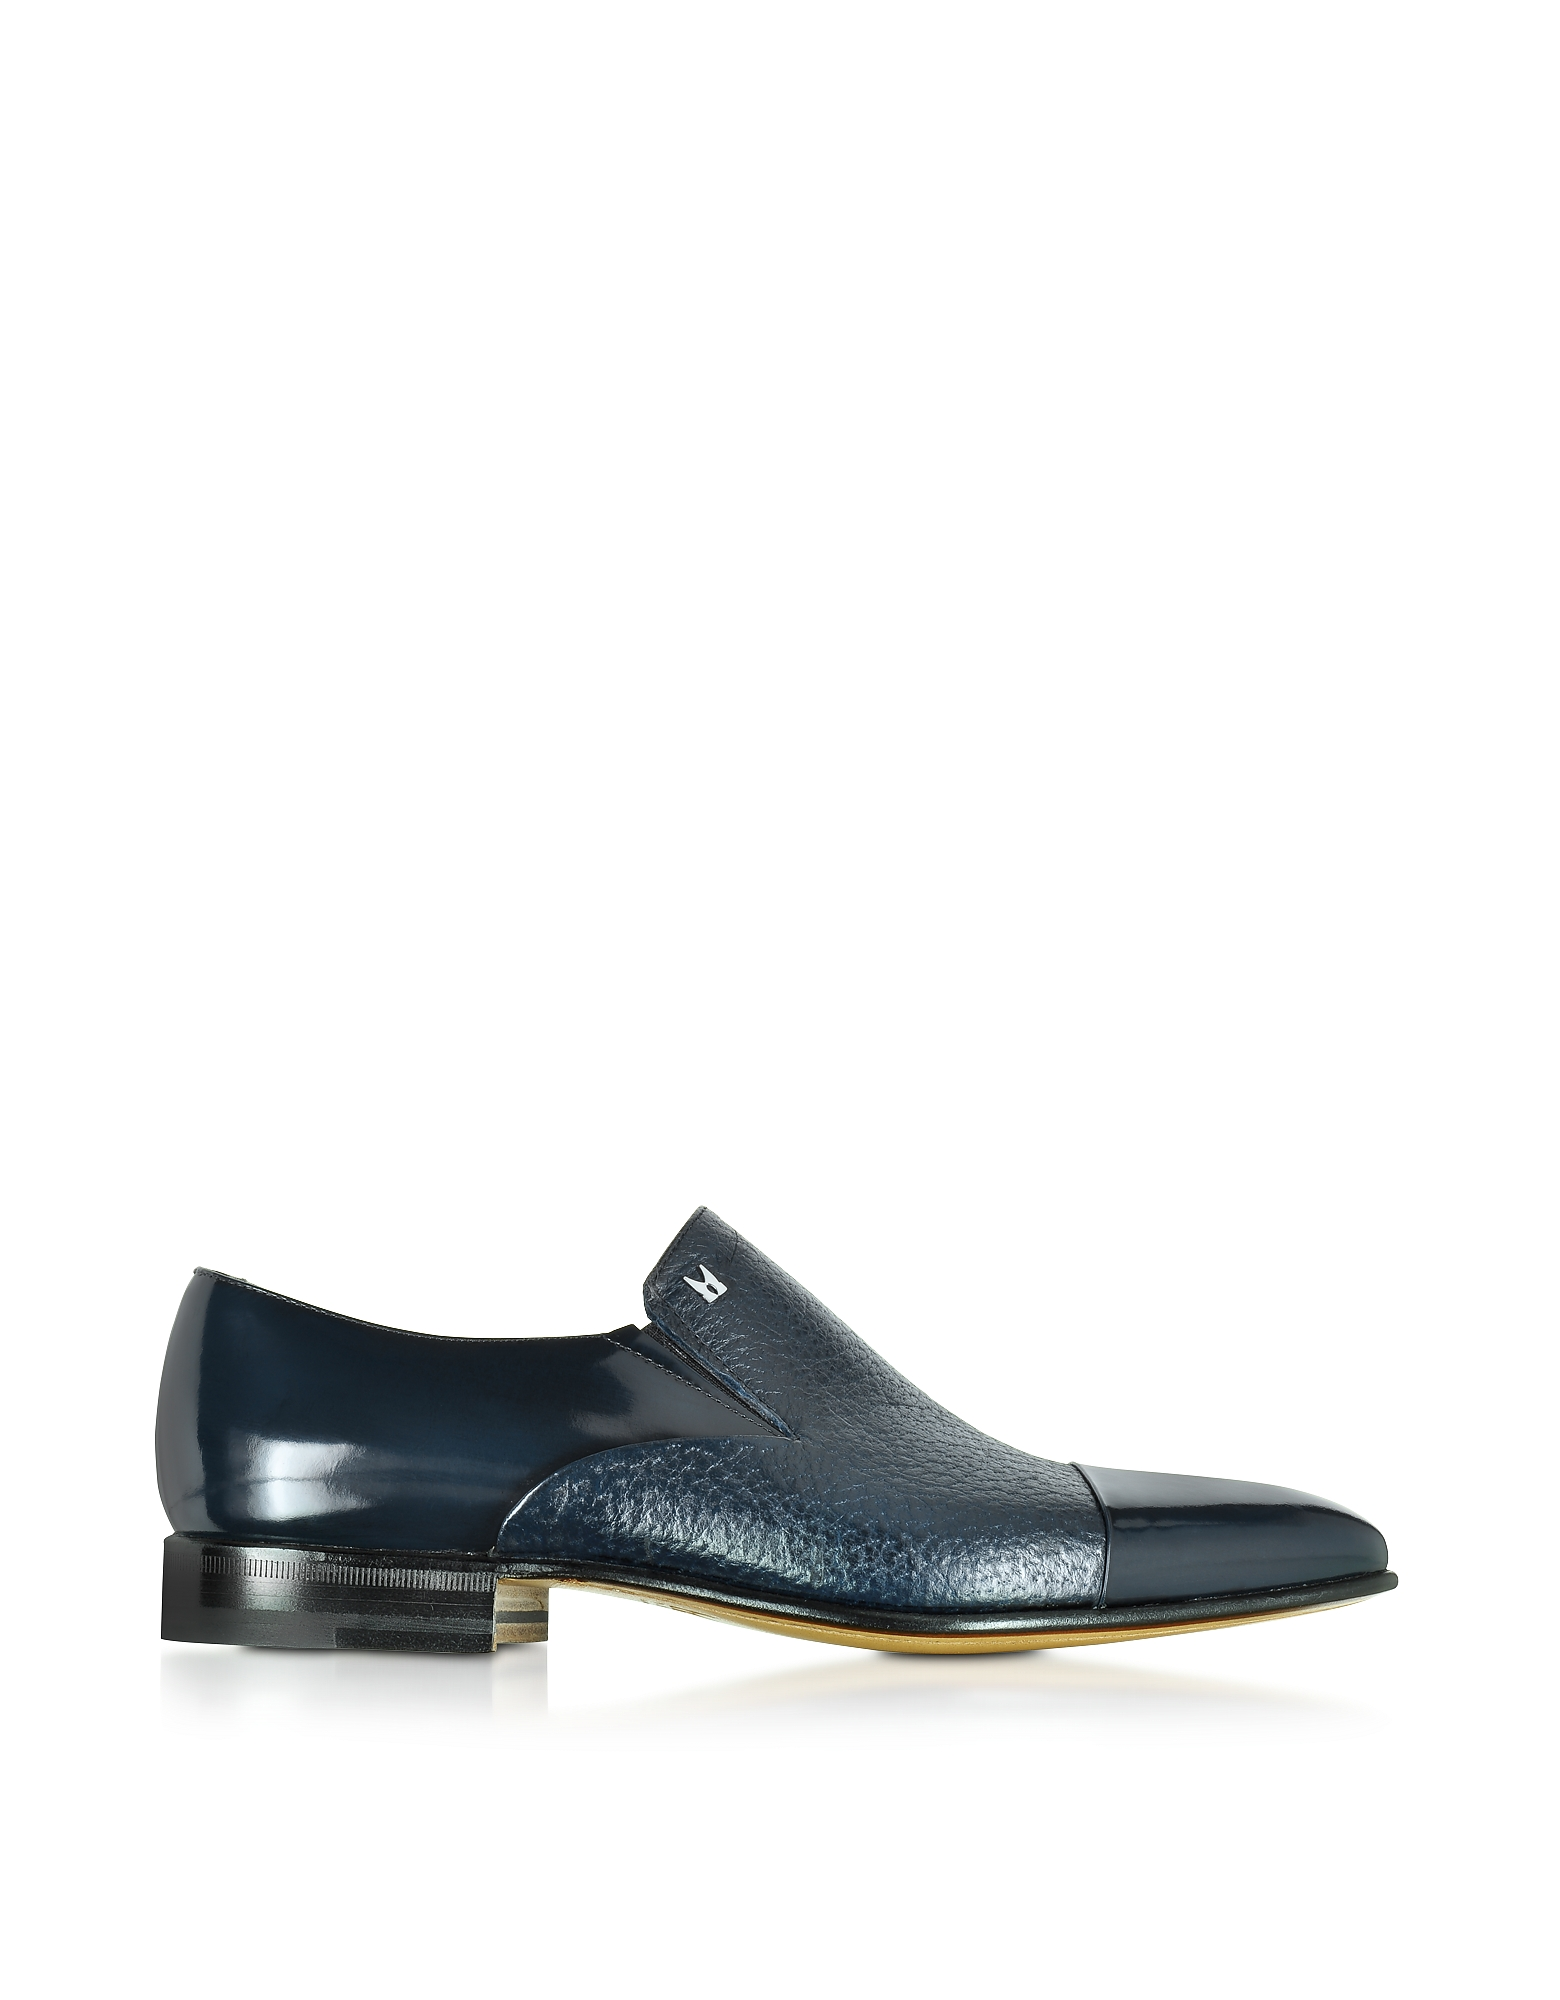 Moreschi Shoes, Metz Blue Leather Slip on Loafer